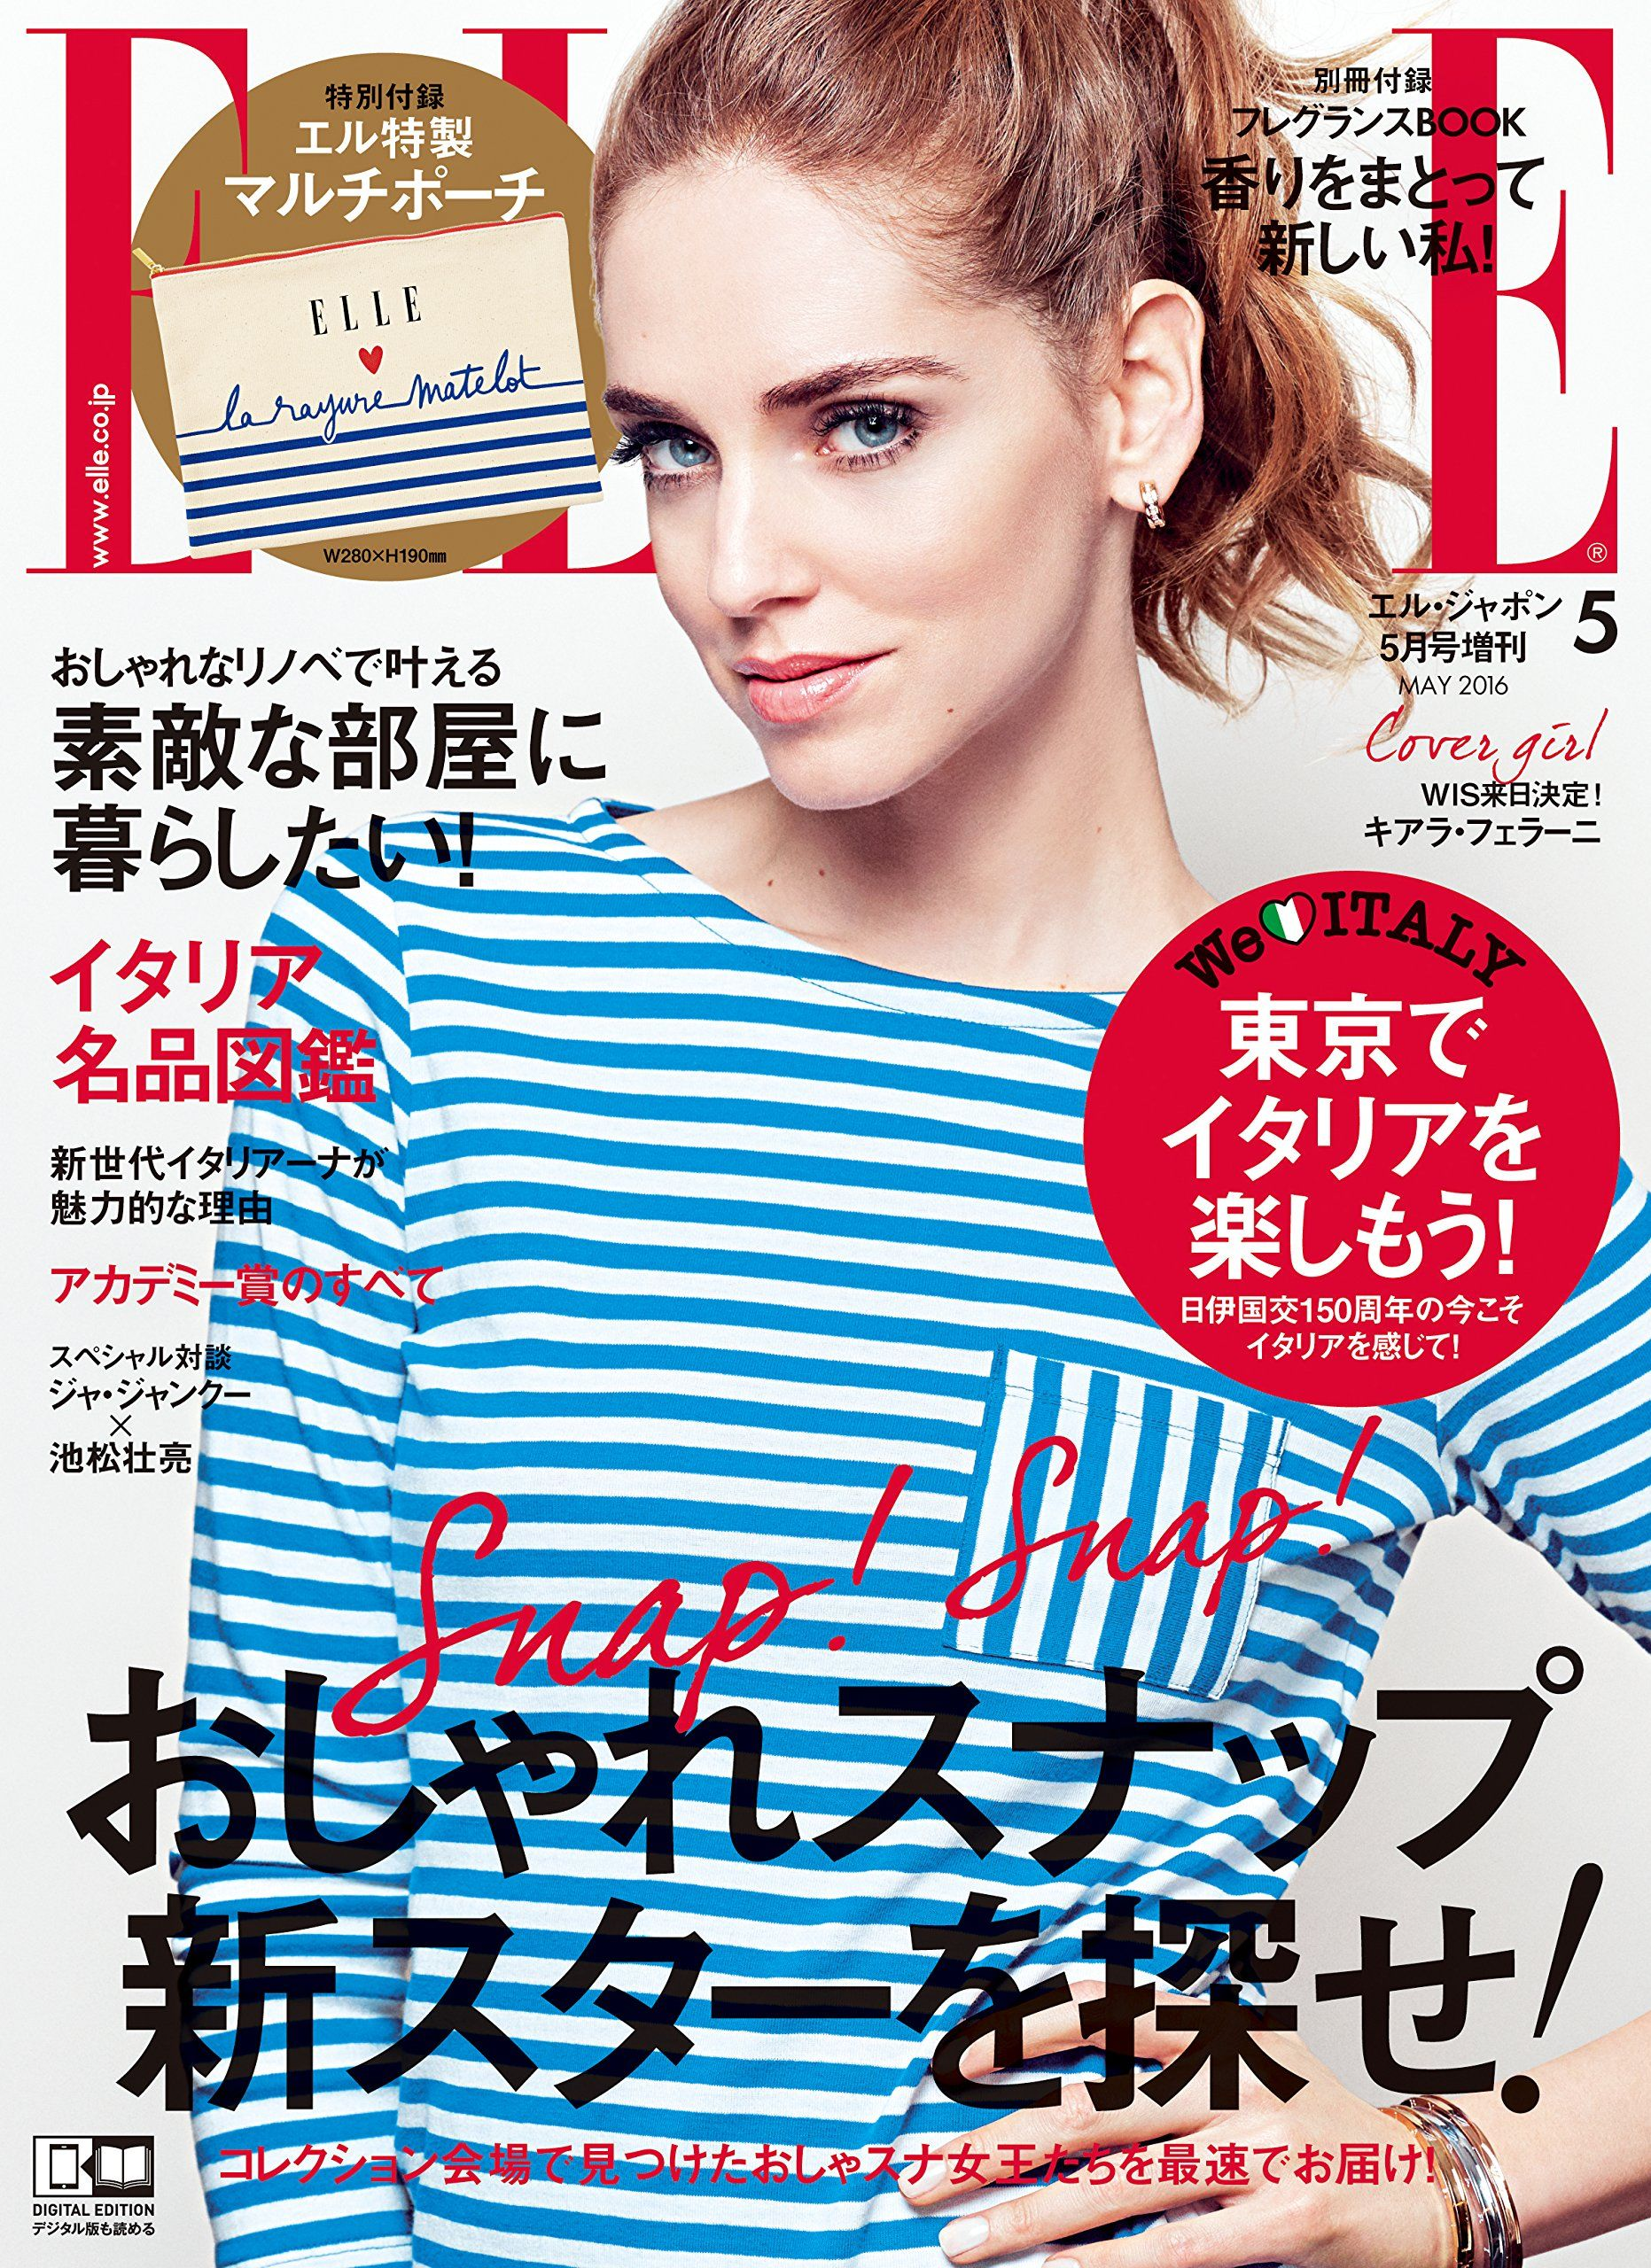 Elle Japan Cover May 2015 | Danilo Scarpati | Porter Magazine | Numerique Retouch Photo Retouching Studio